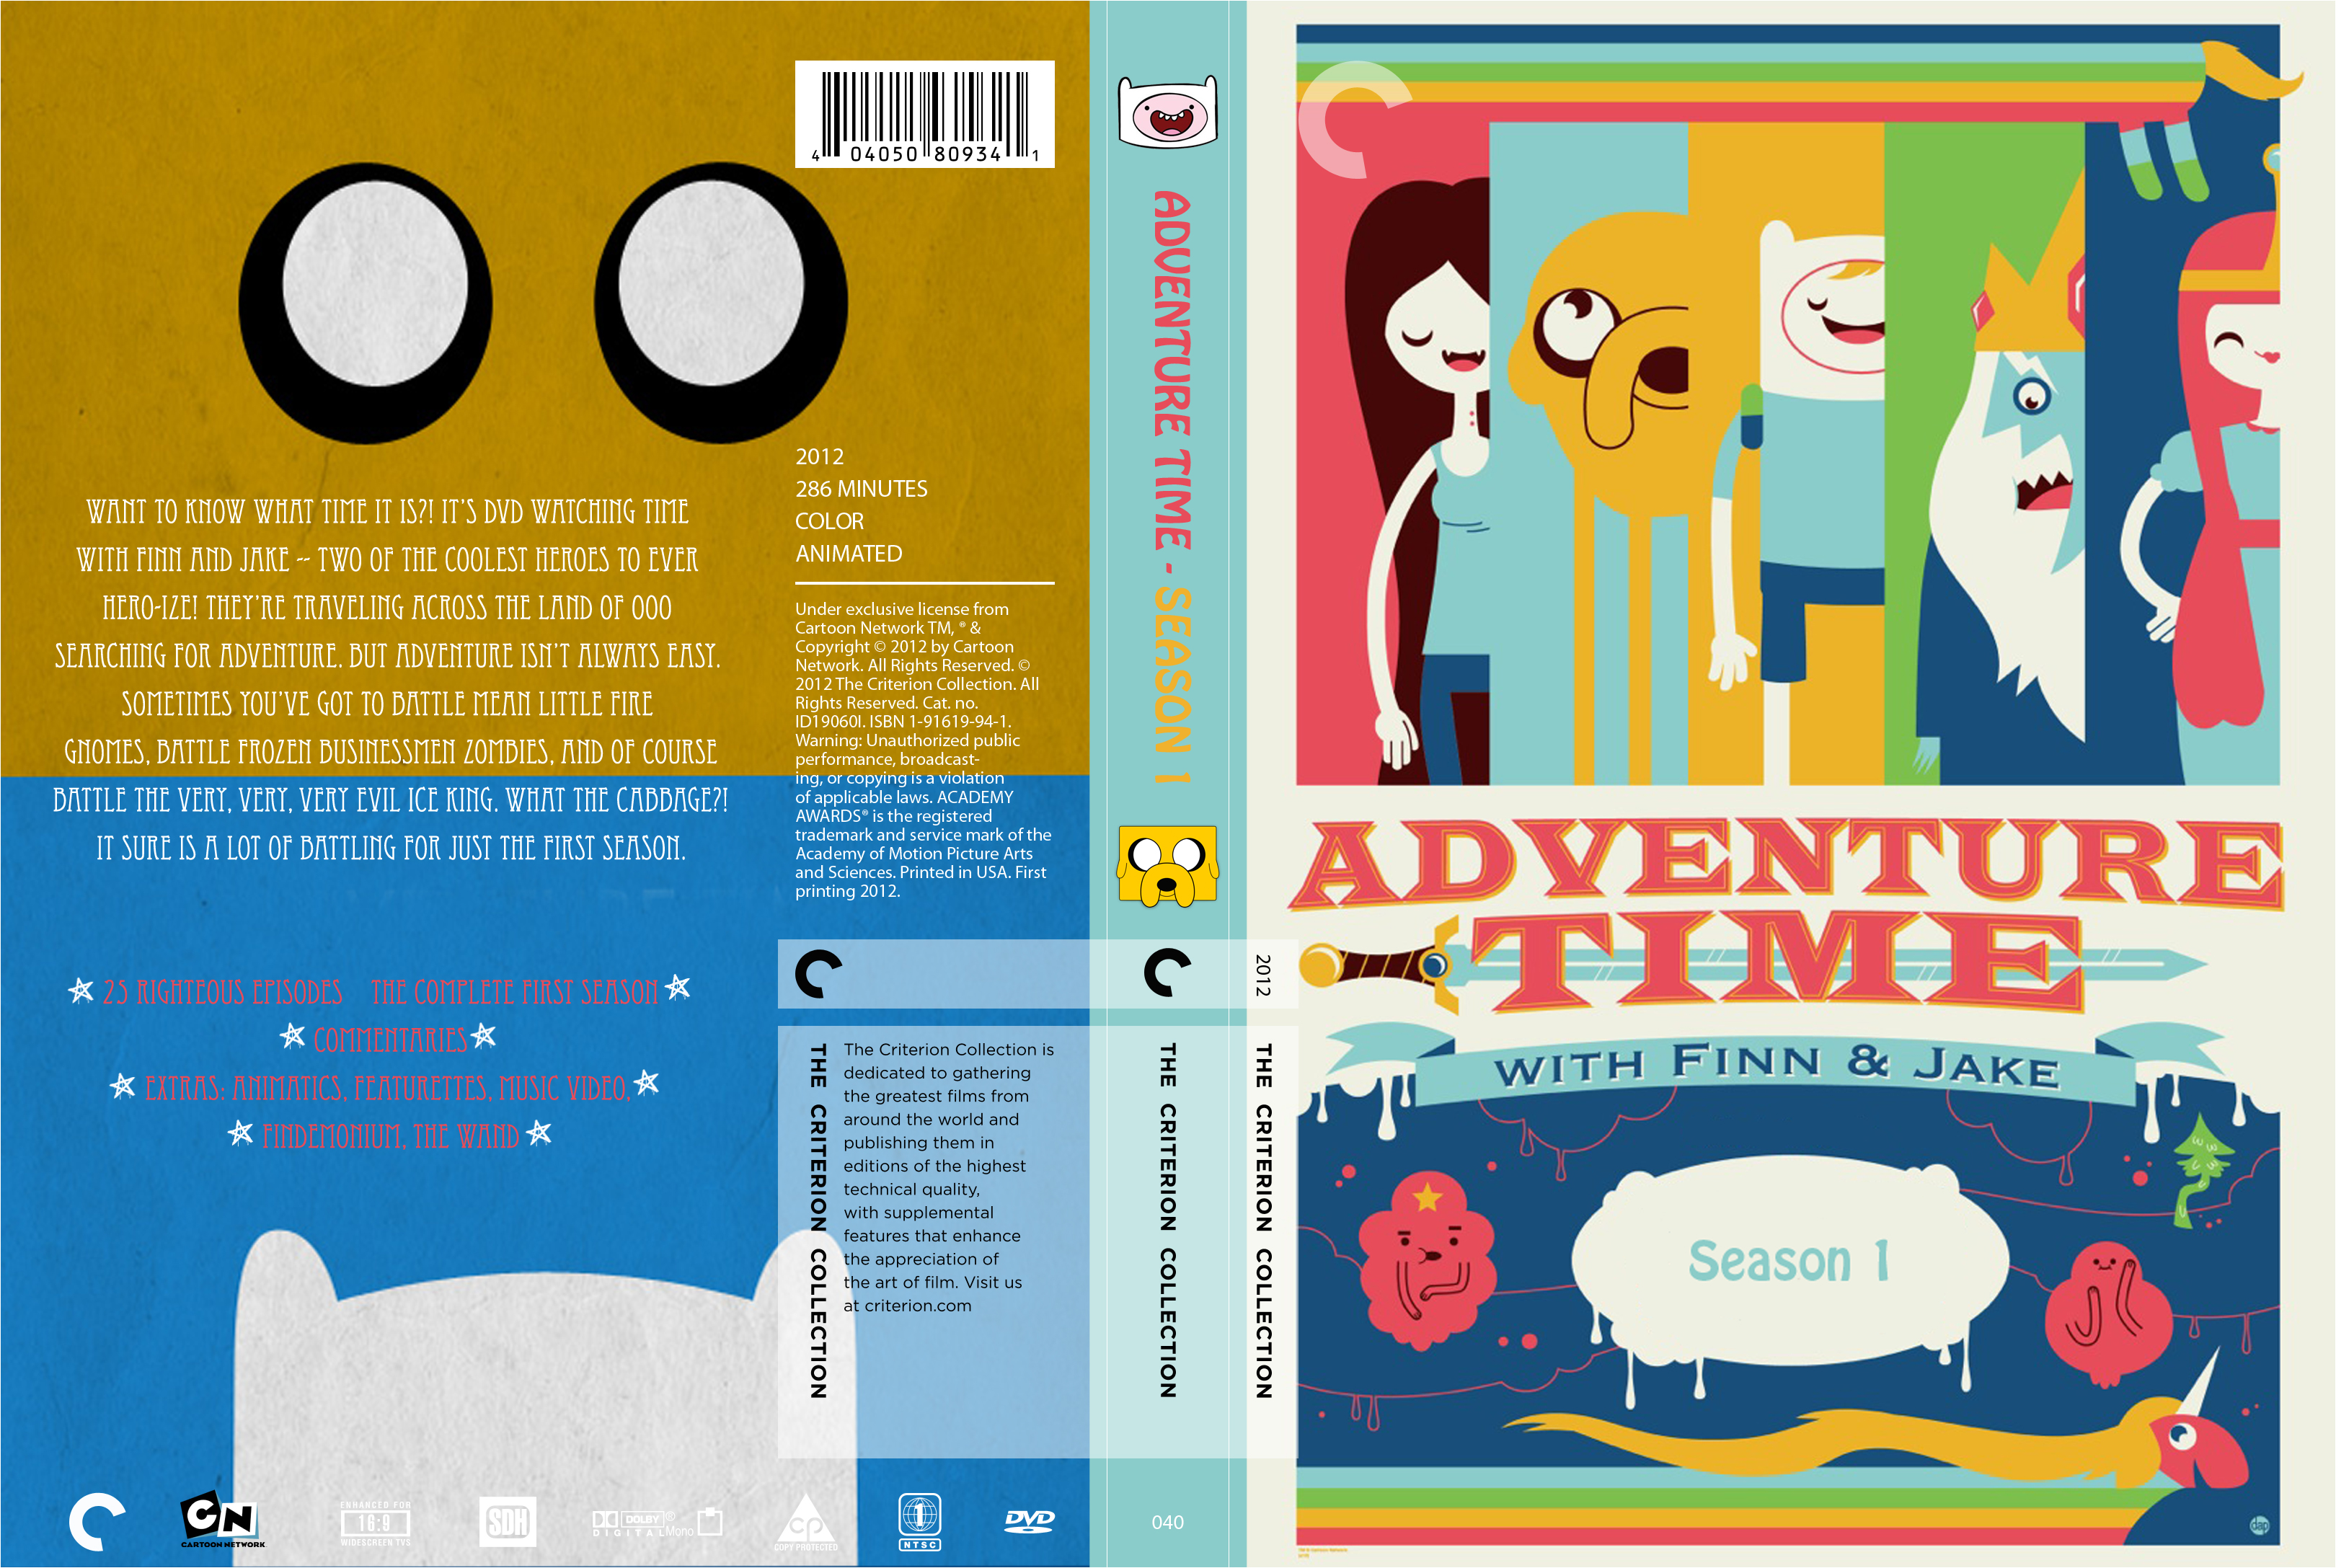 Criterion Cover - Adventure Time Season 1 by lancheney on